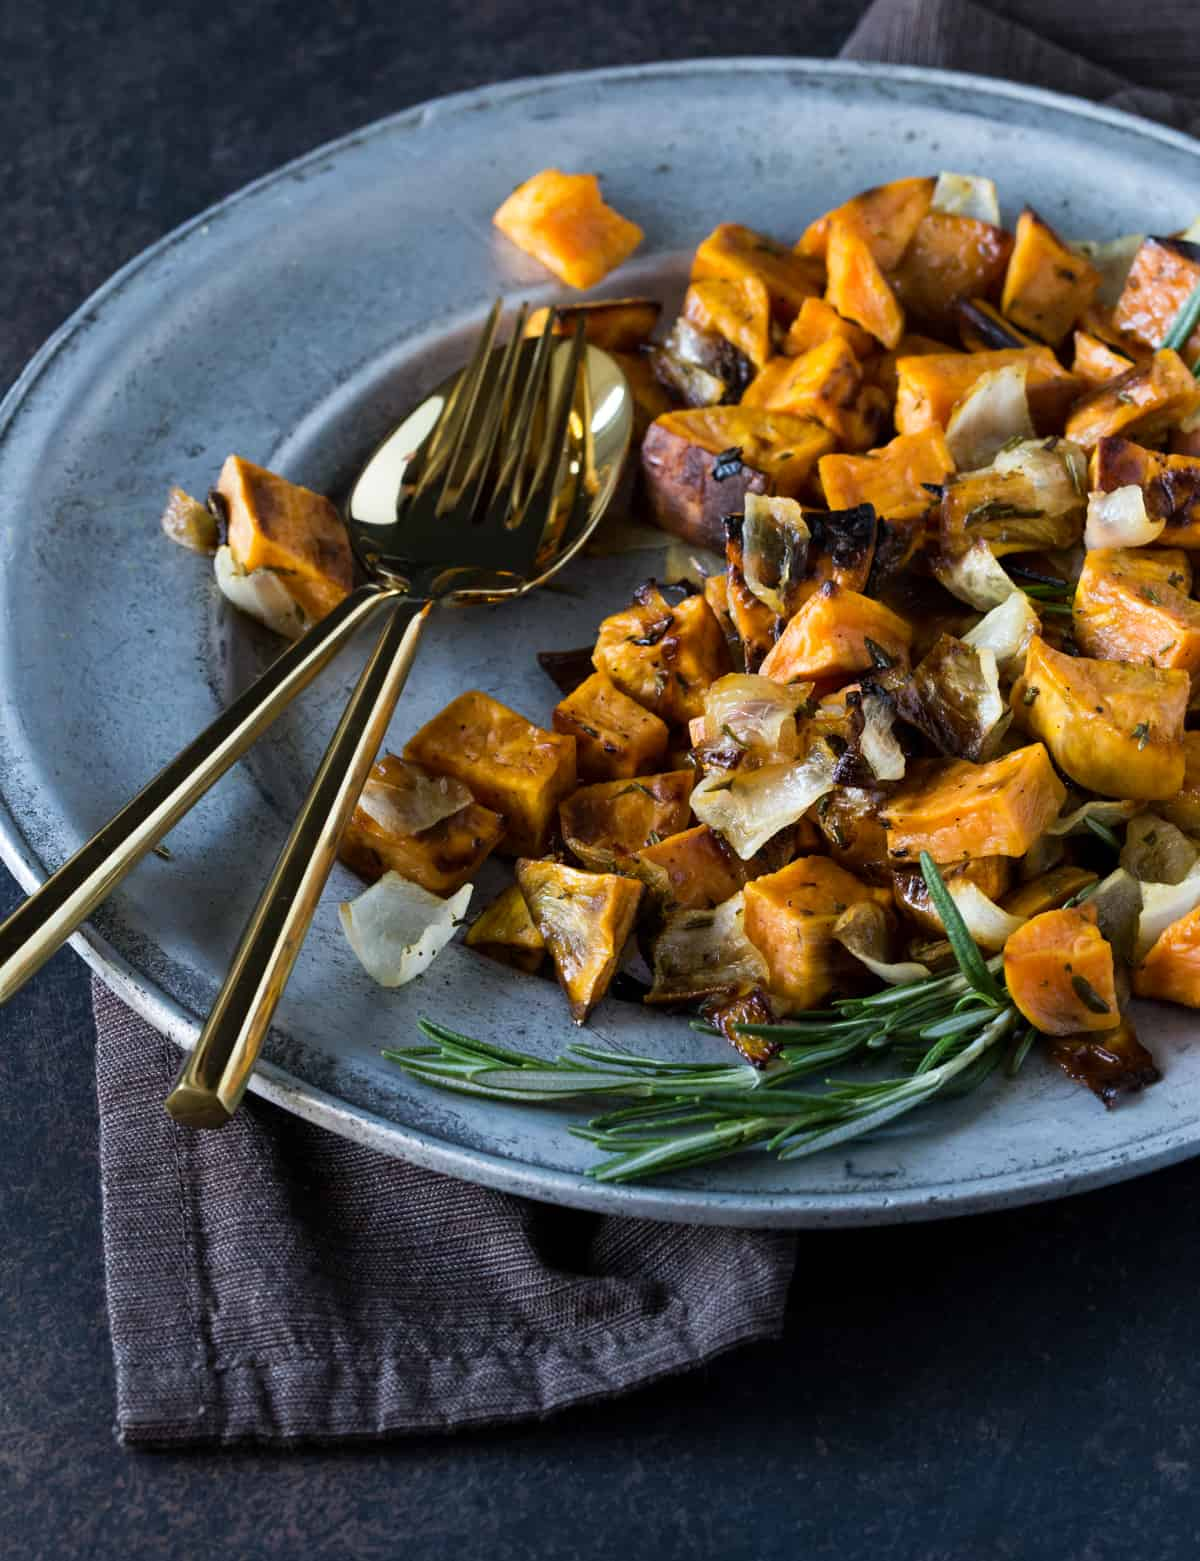 roasted sweet potatoes & onions on a silver plate. Garnished with fresh rosemary and gold utensils